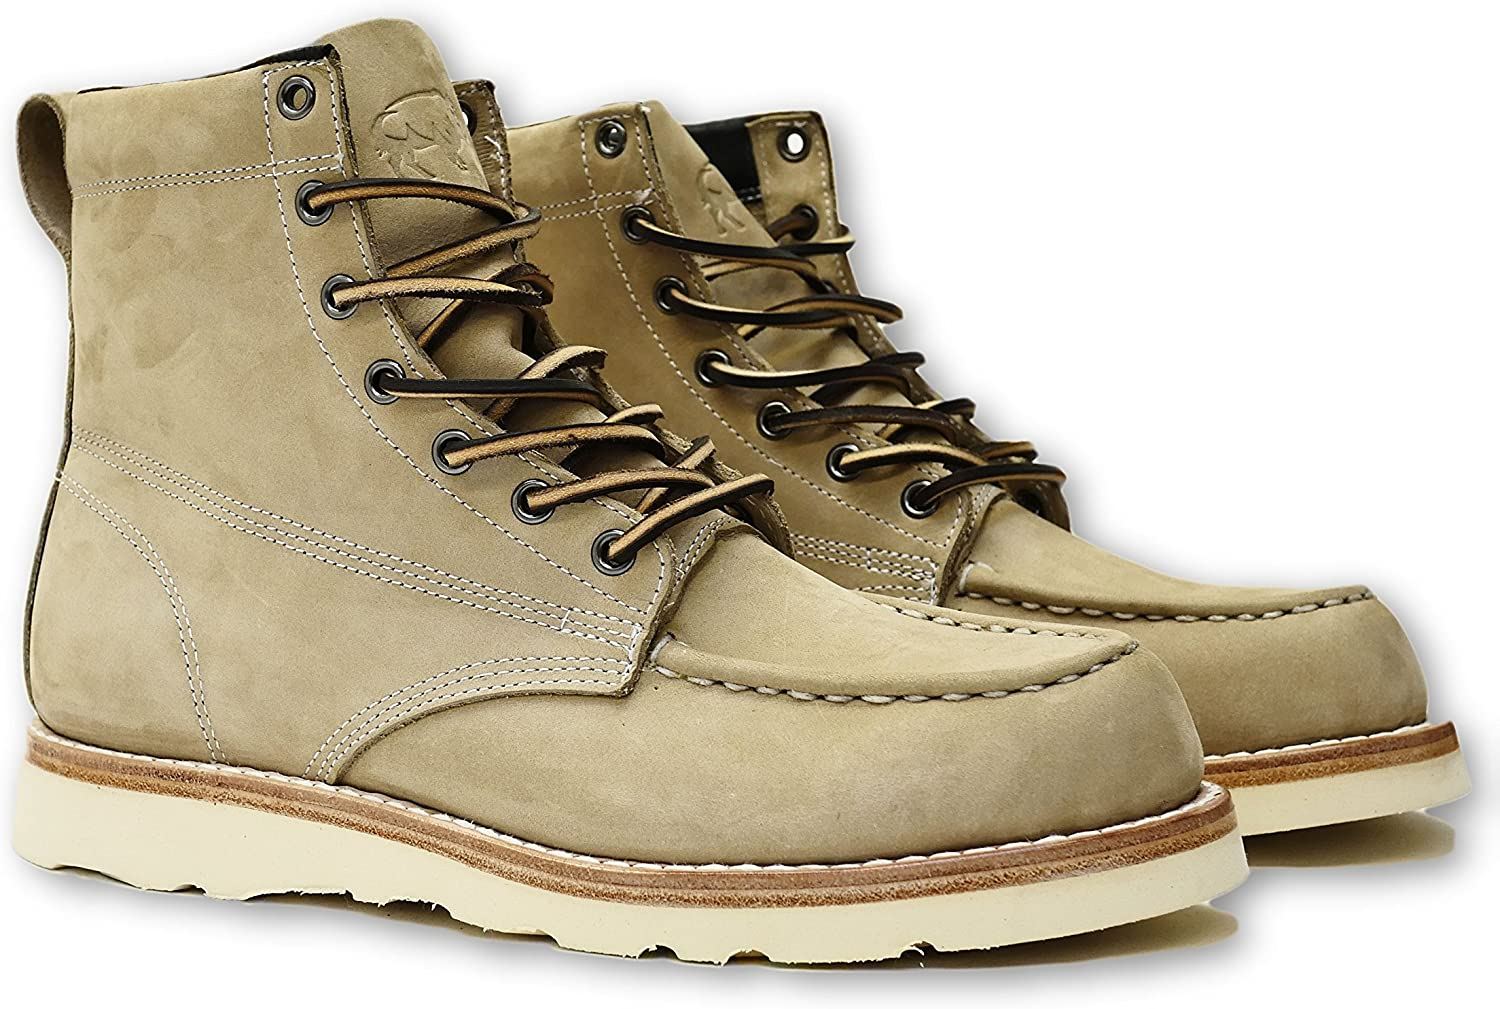 T.E. Newton Men's Boots Casual Fashion Work